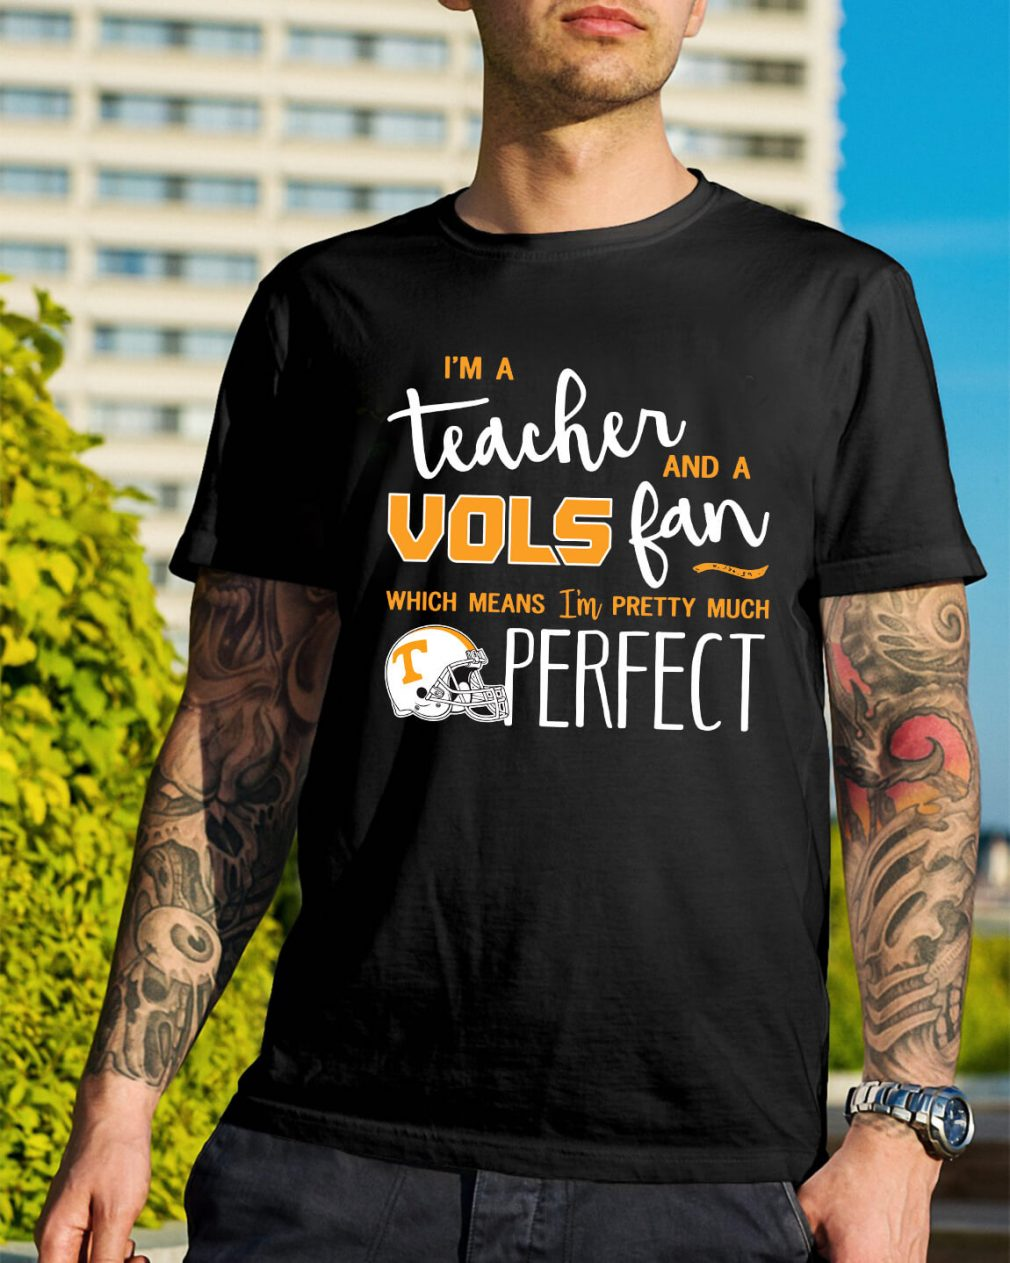 I'm a teacher and a vols fan which means I'm pretty much perfect shirt